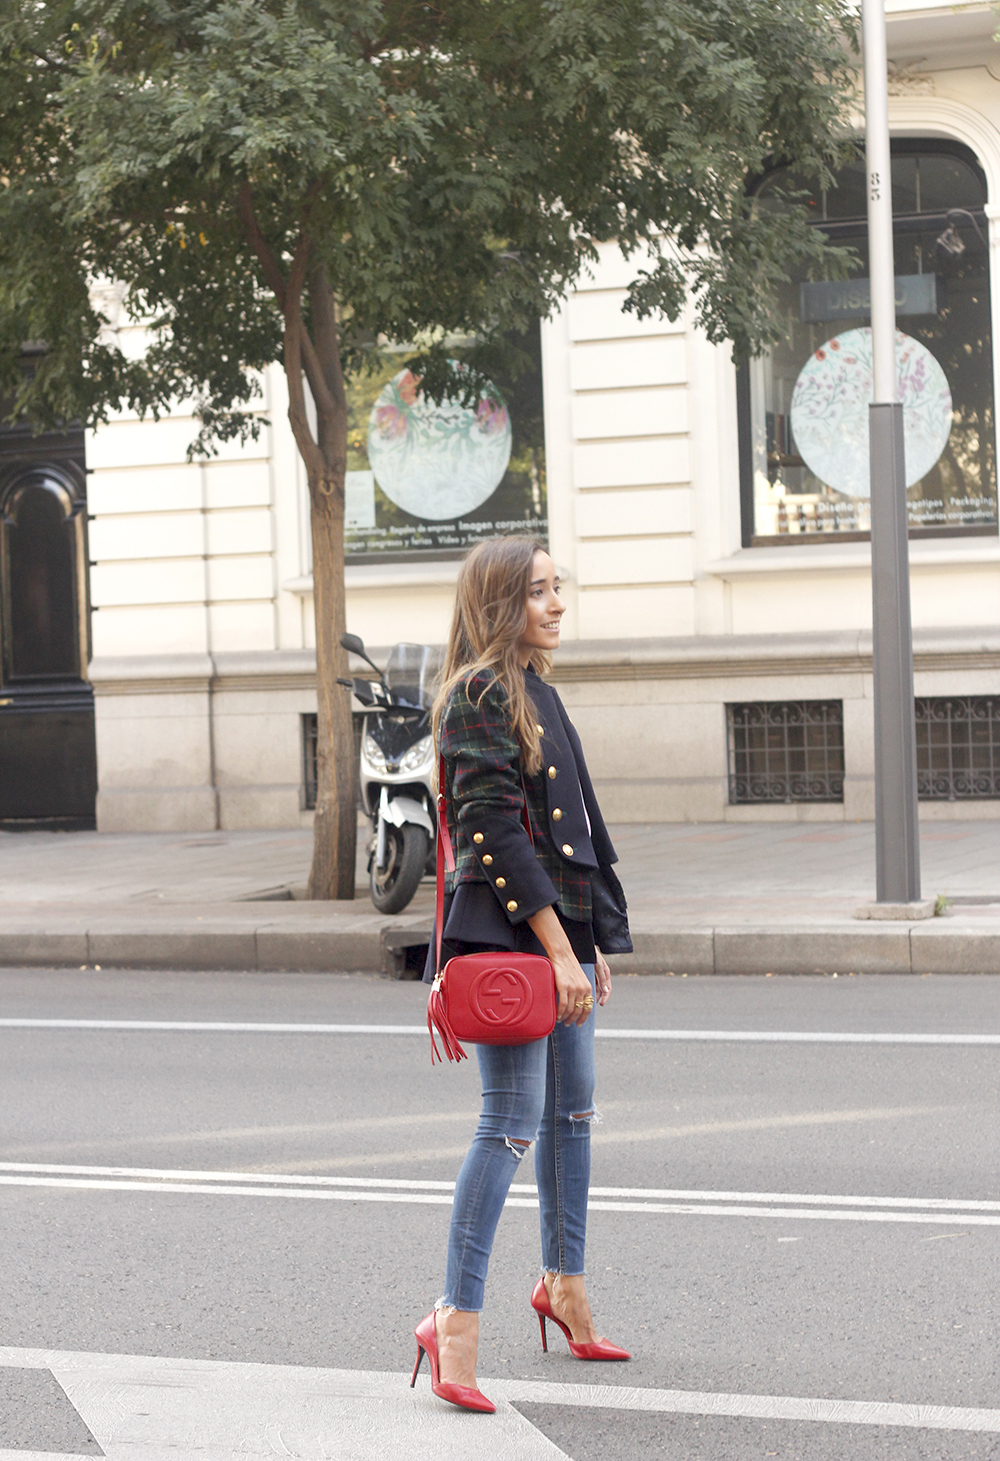 CHECKED BLAZER highly preppy gucci bag ripped jeans street style 2018 outfit14